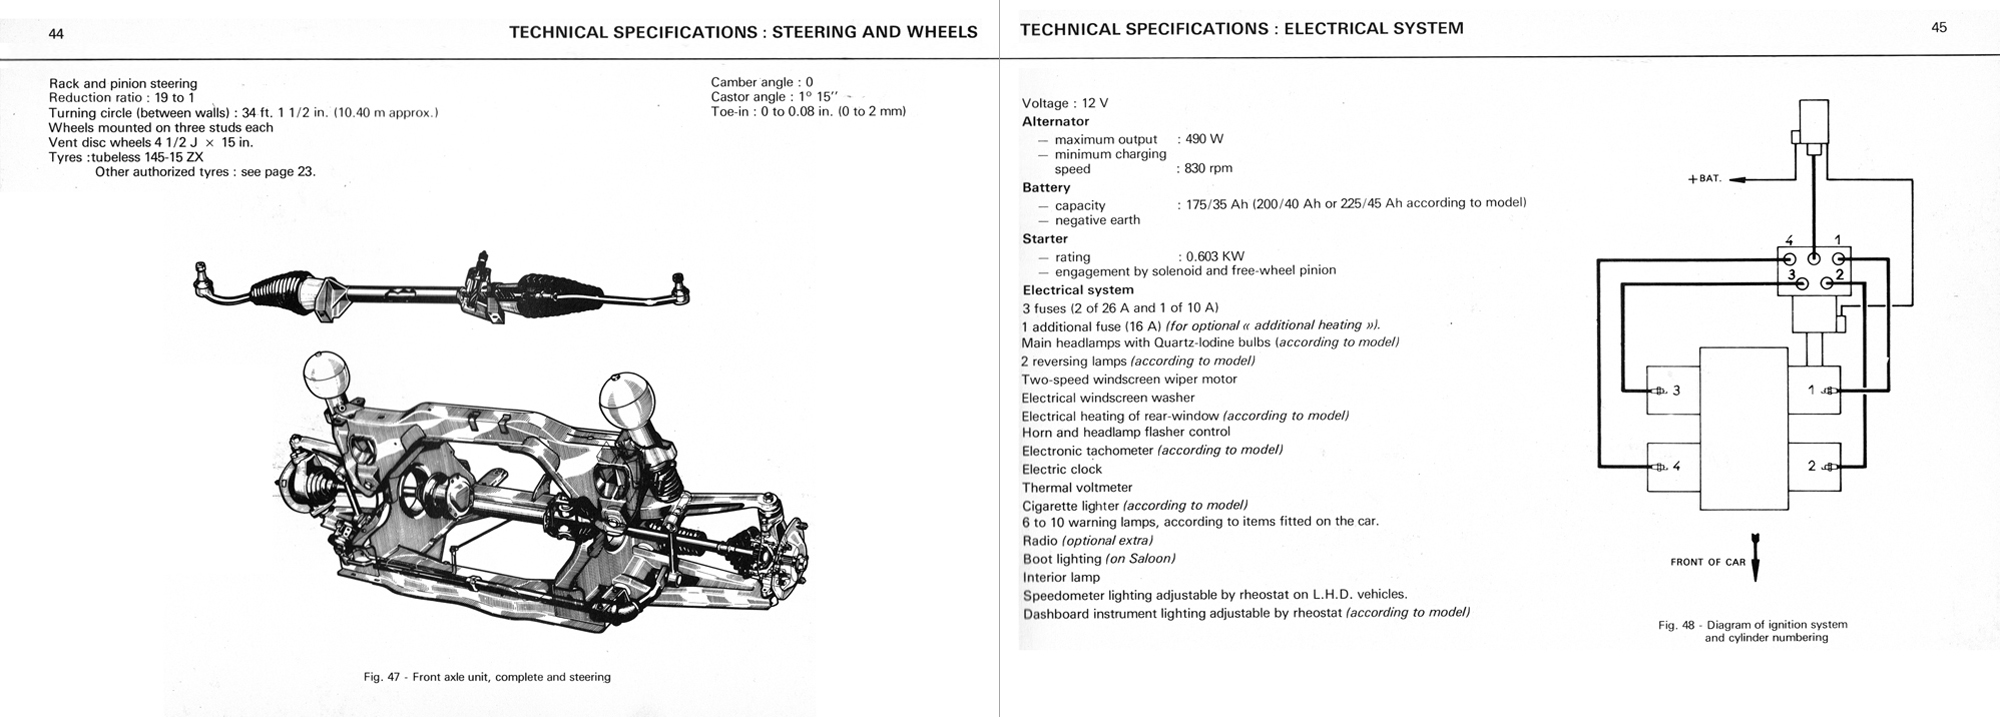 1978 Citroën GS owner's manual Page 2